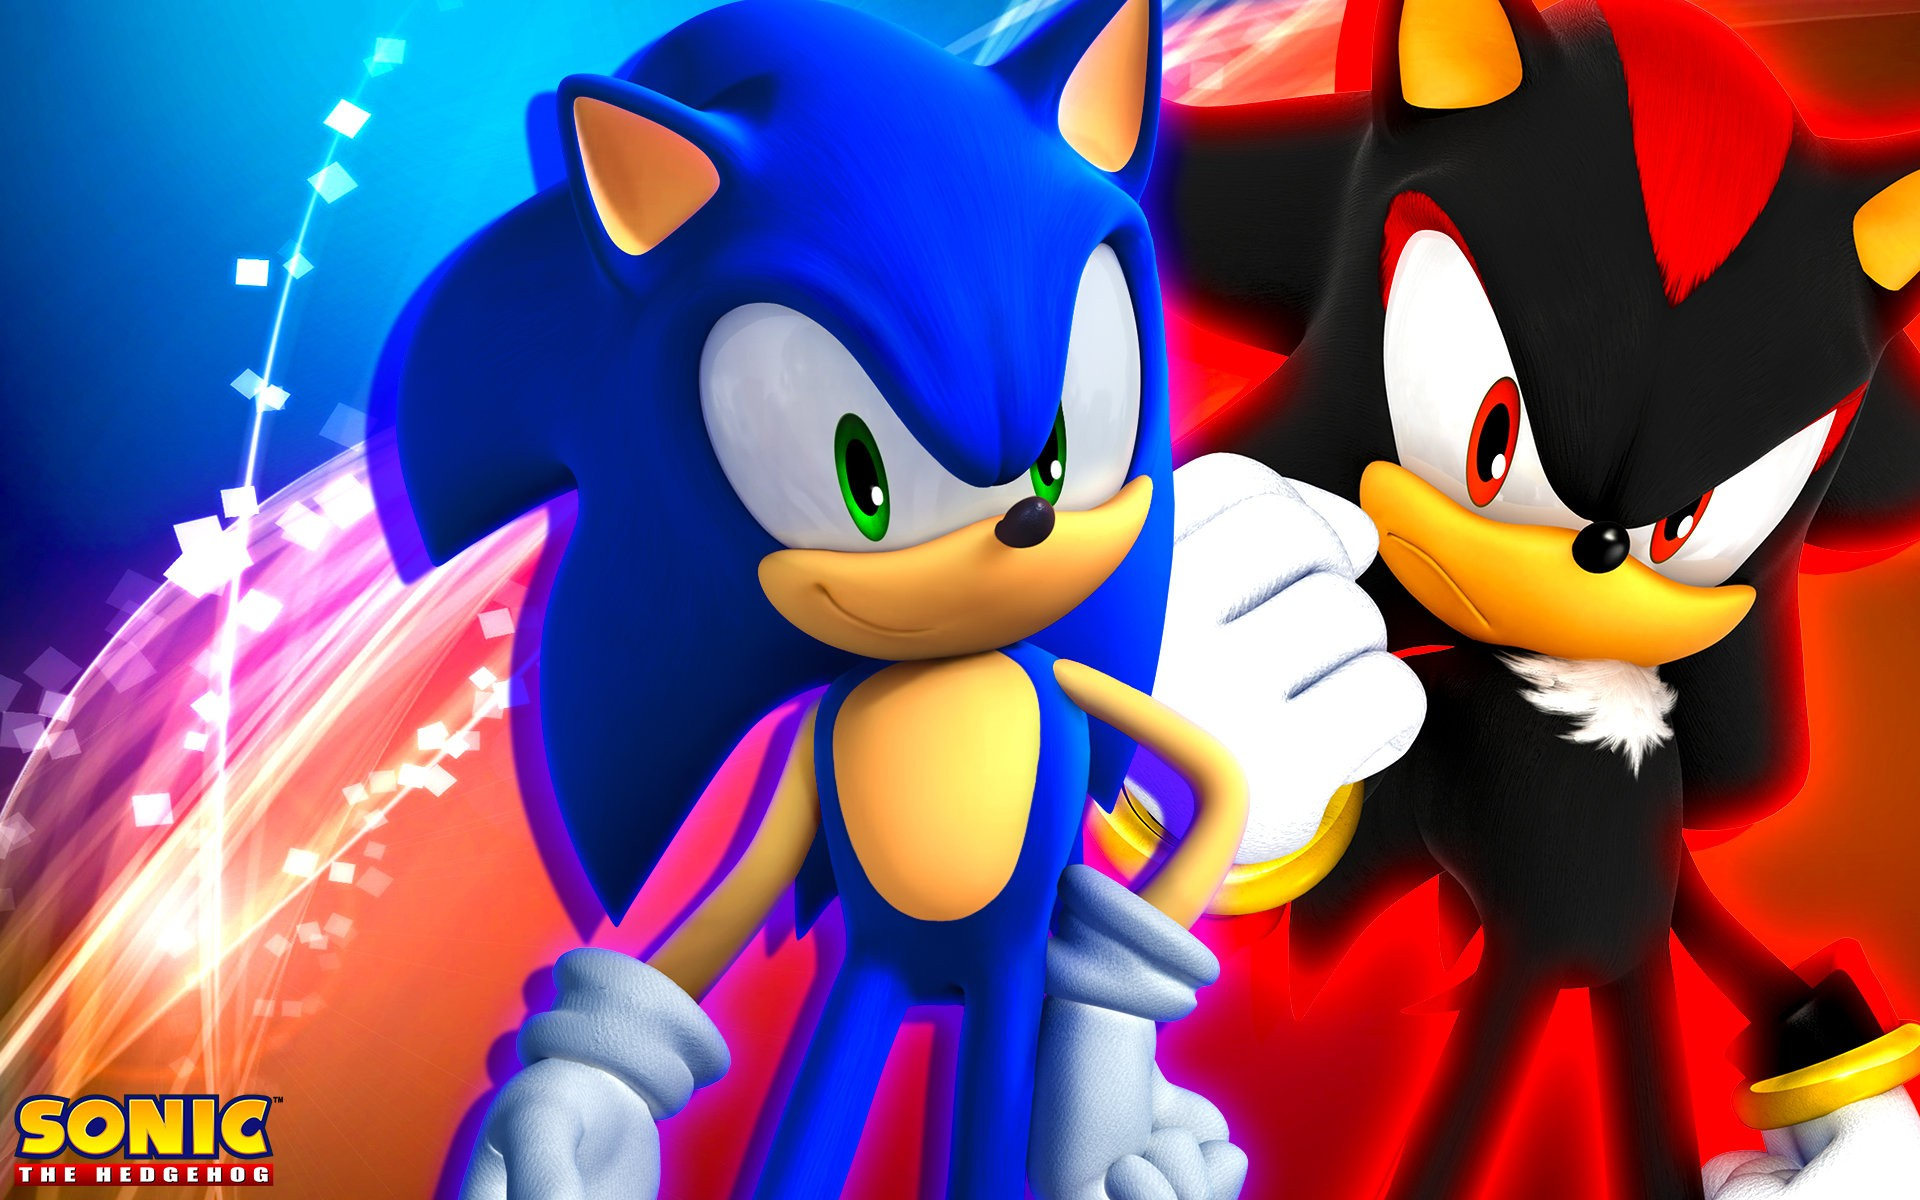 Sonic The Hedgehog Hd Wallpapers Pictures Images